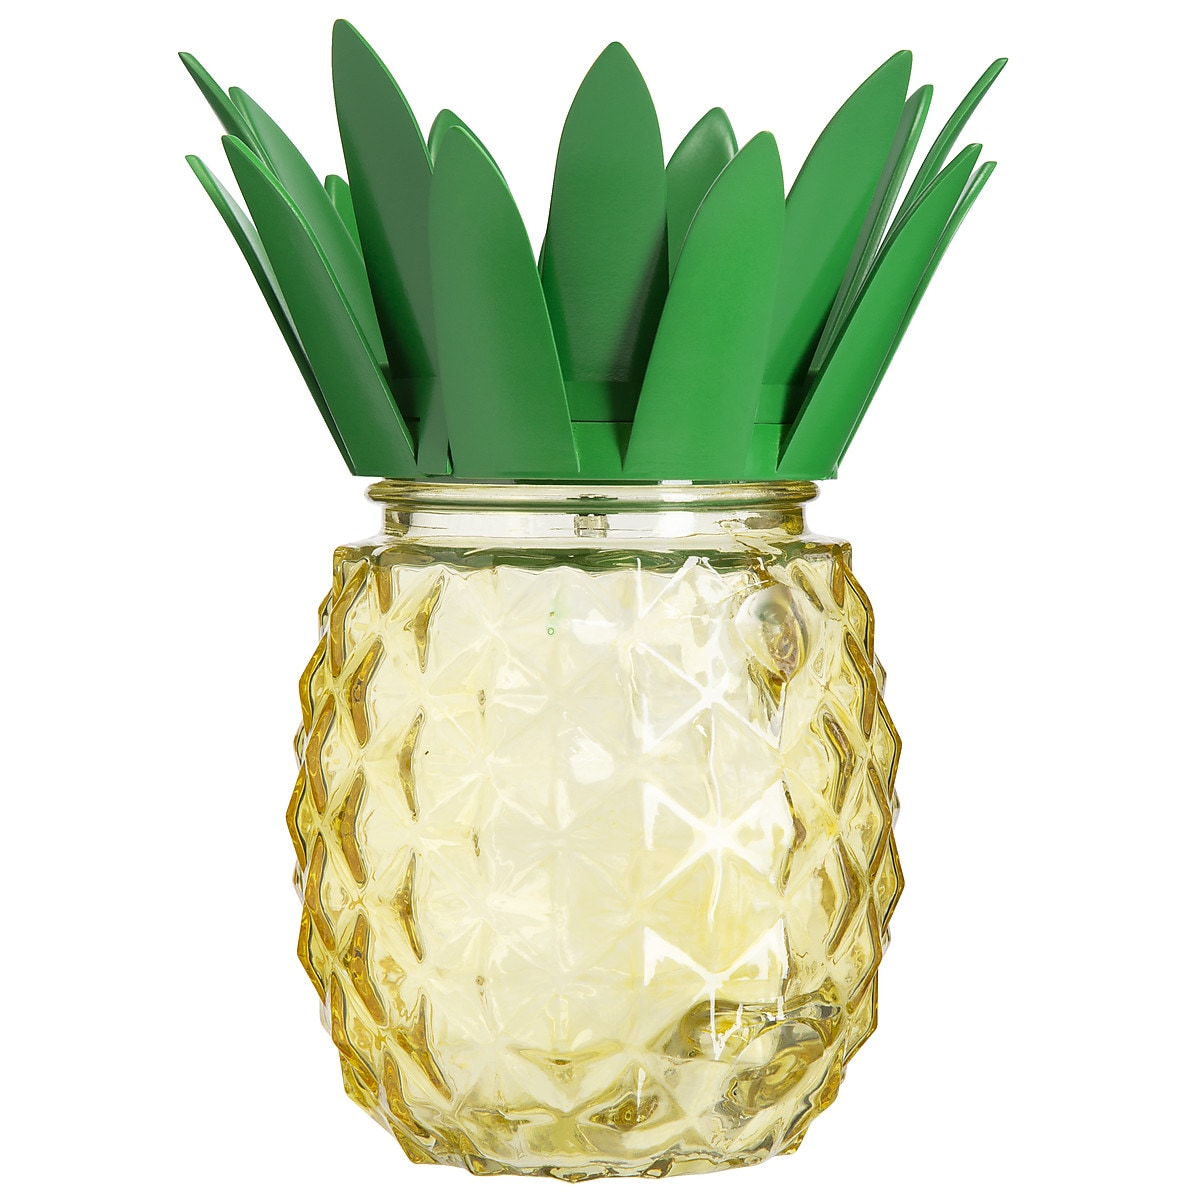 Ananas solcellelykt